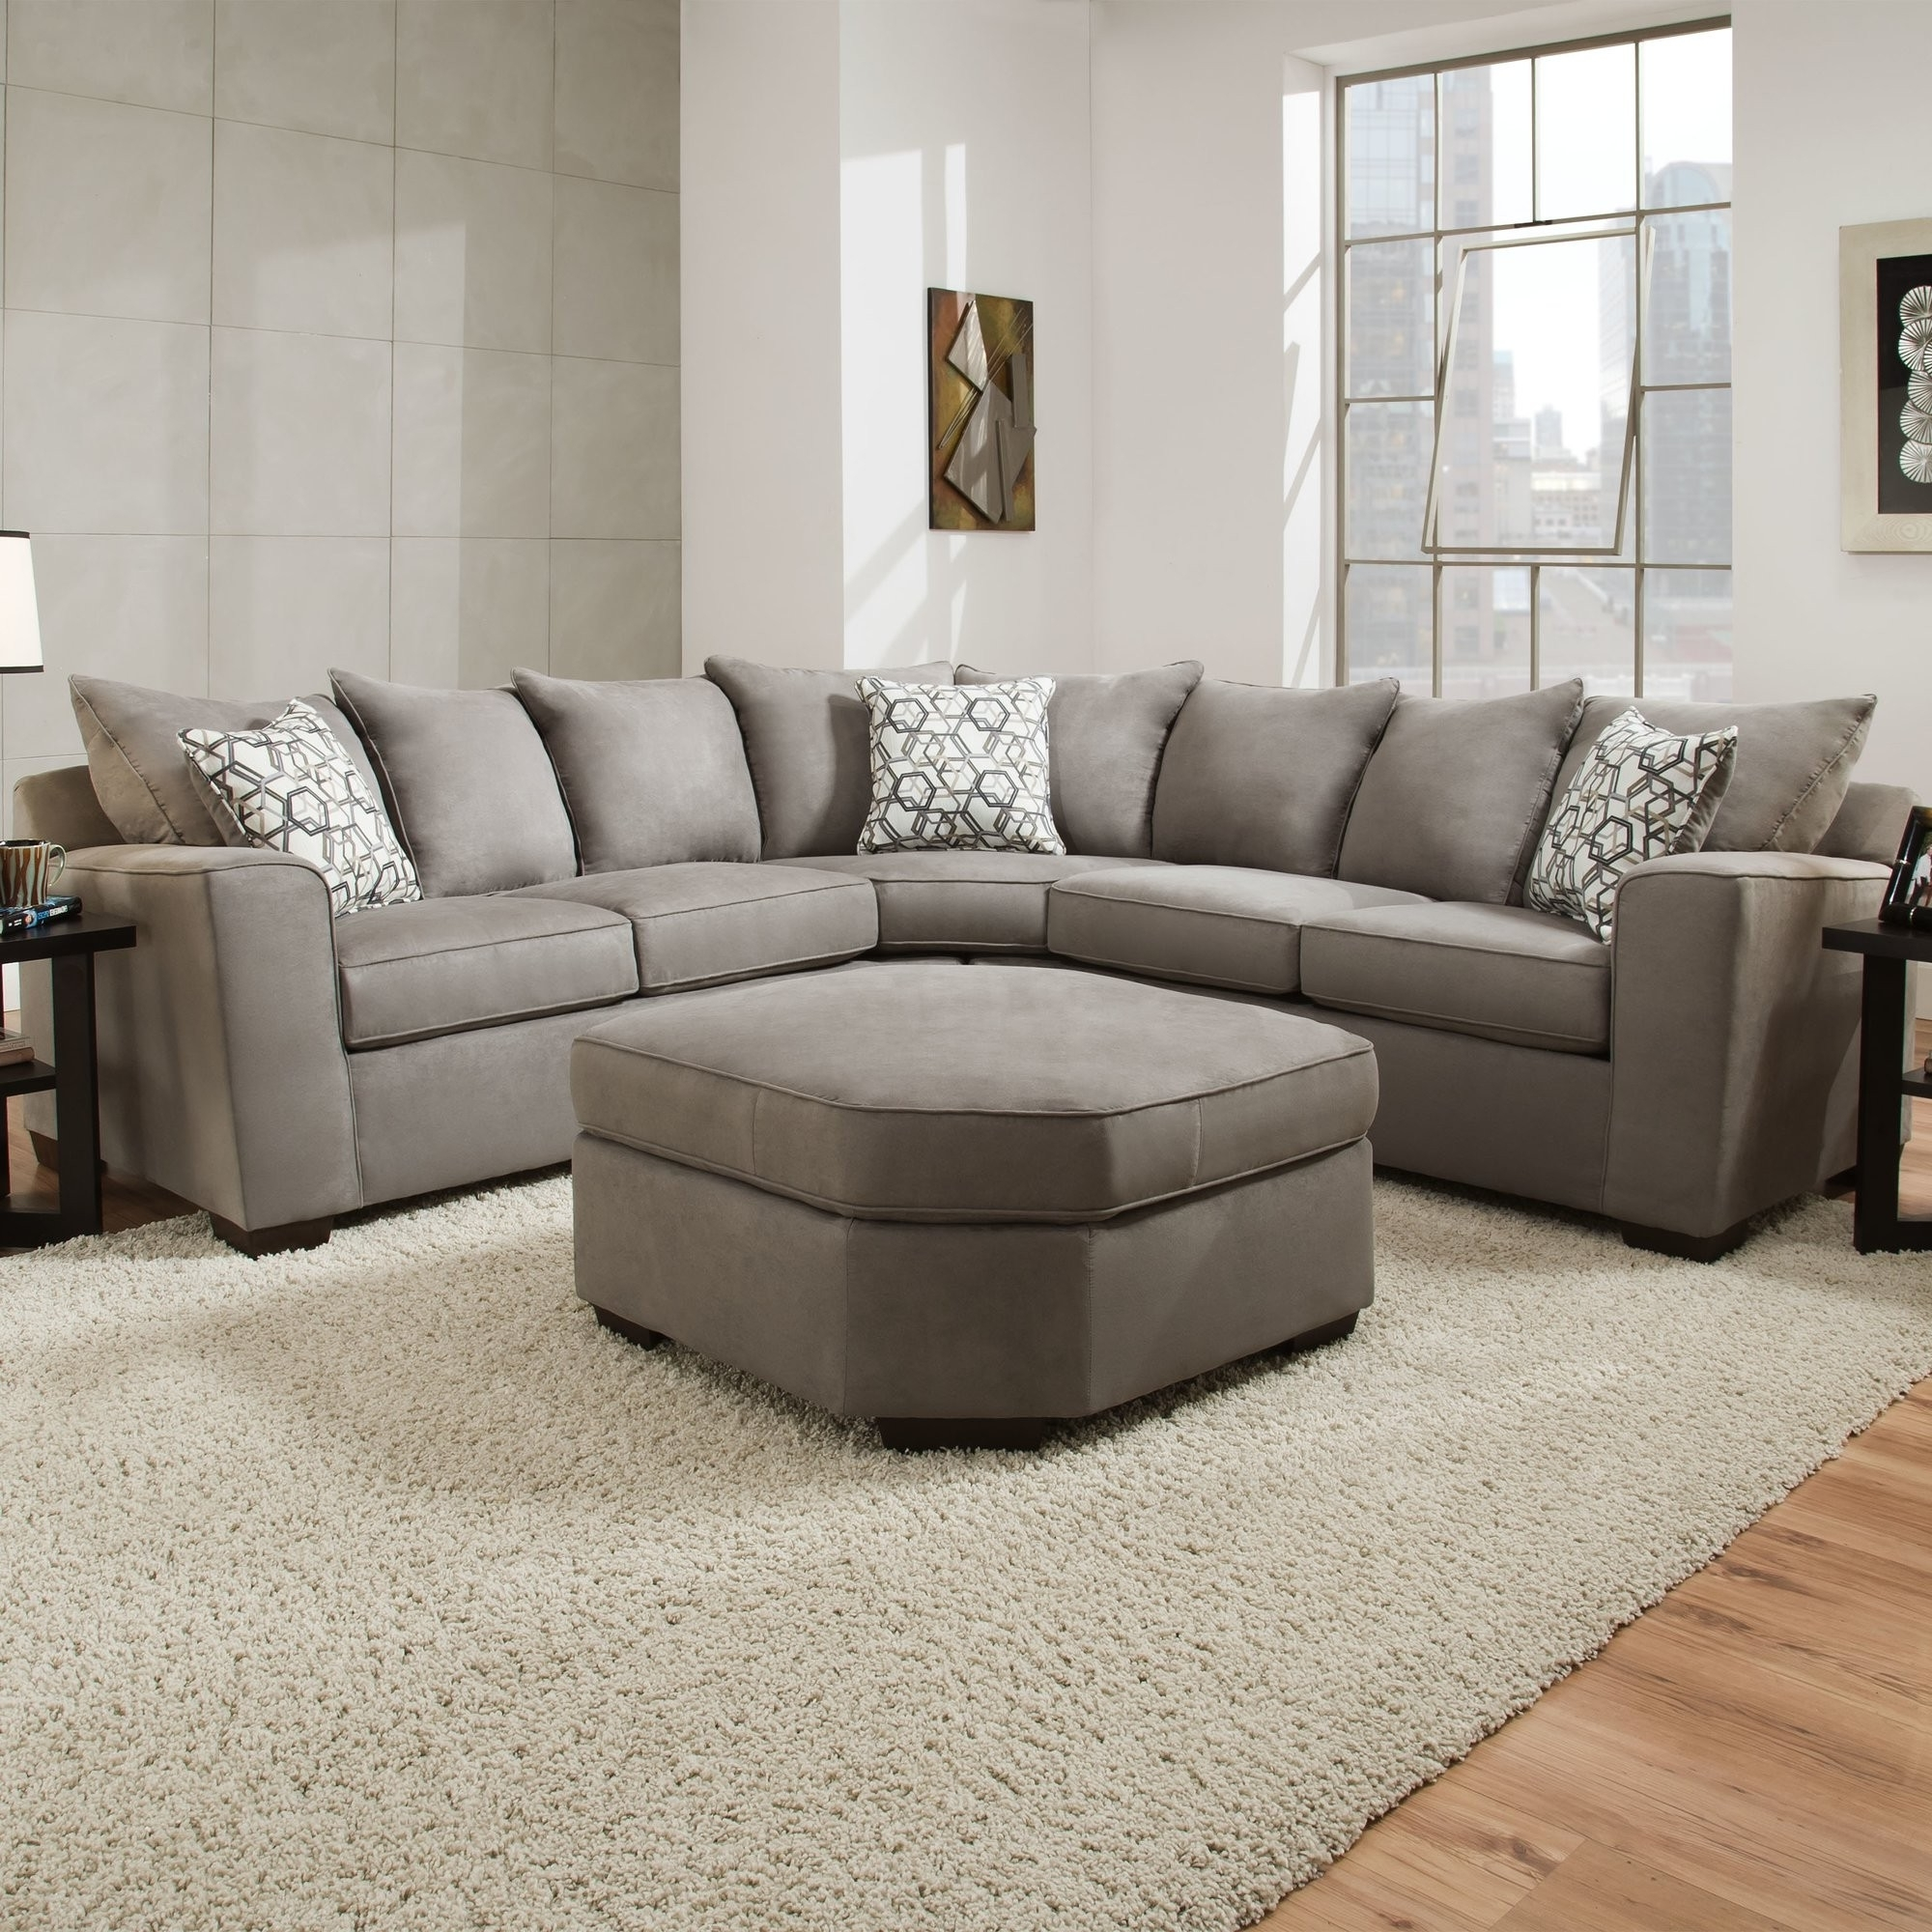 2018 Joss And Main Sectional Sofas Inside Fresh Simmons Sectional Sofa Joss And Main – Buildsimplehome (View 2 of 15)